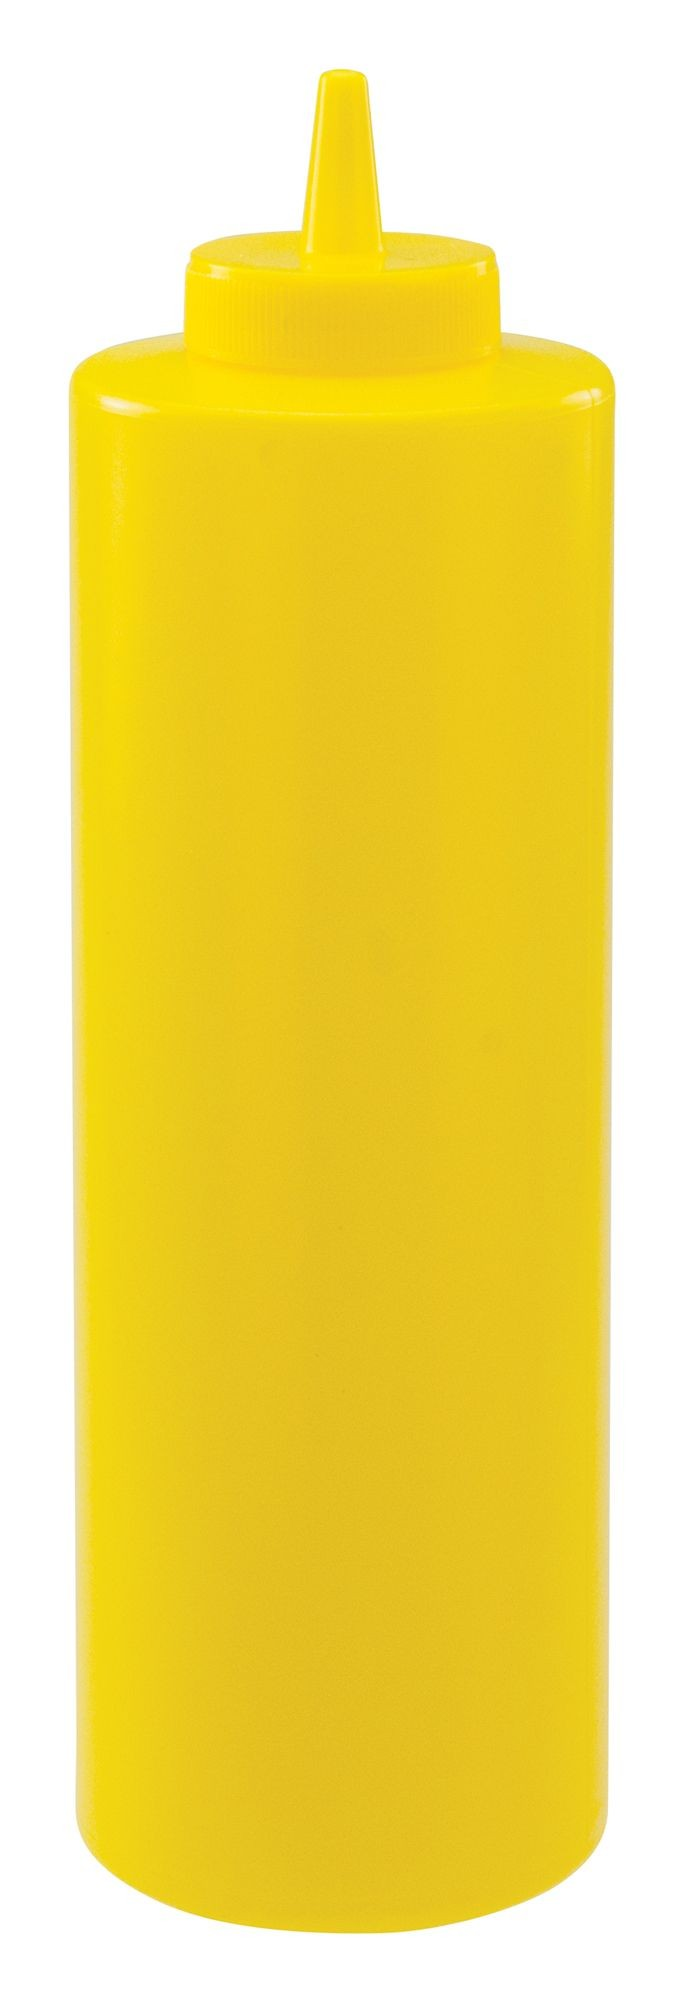 Winco PSB-24Y Yellow Plastic 24 oz. Squeeze Bottle